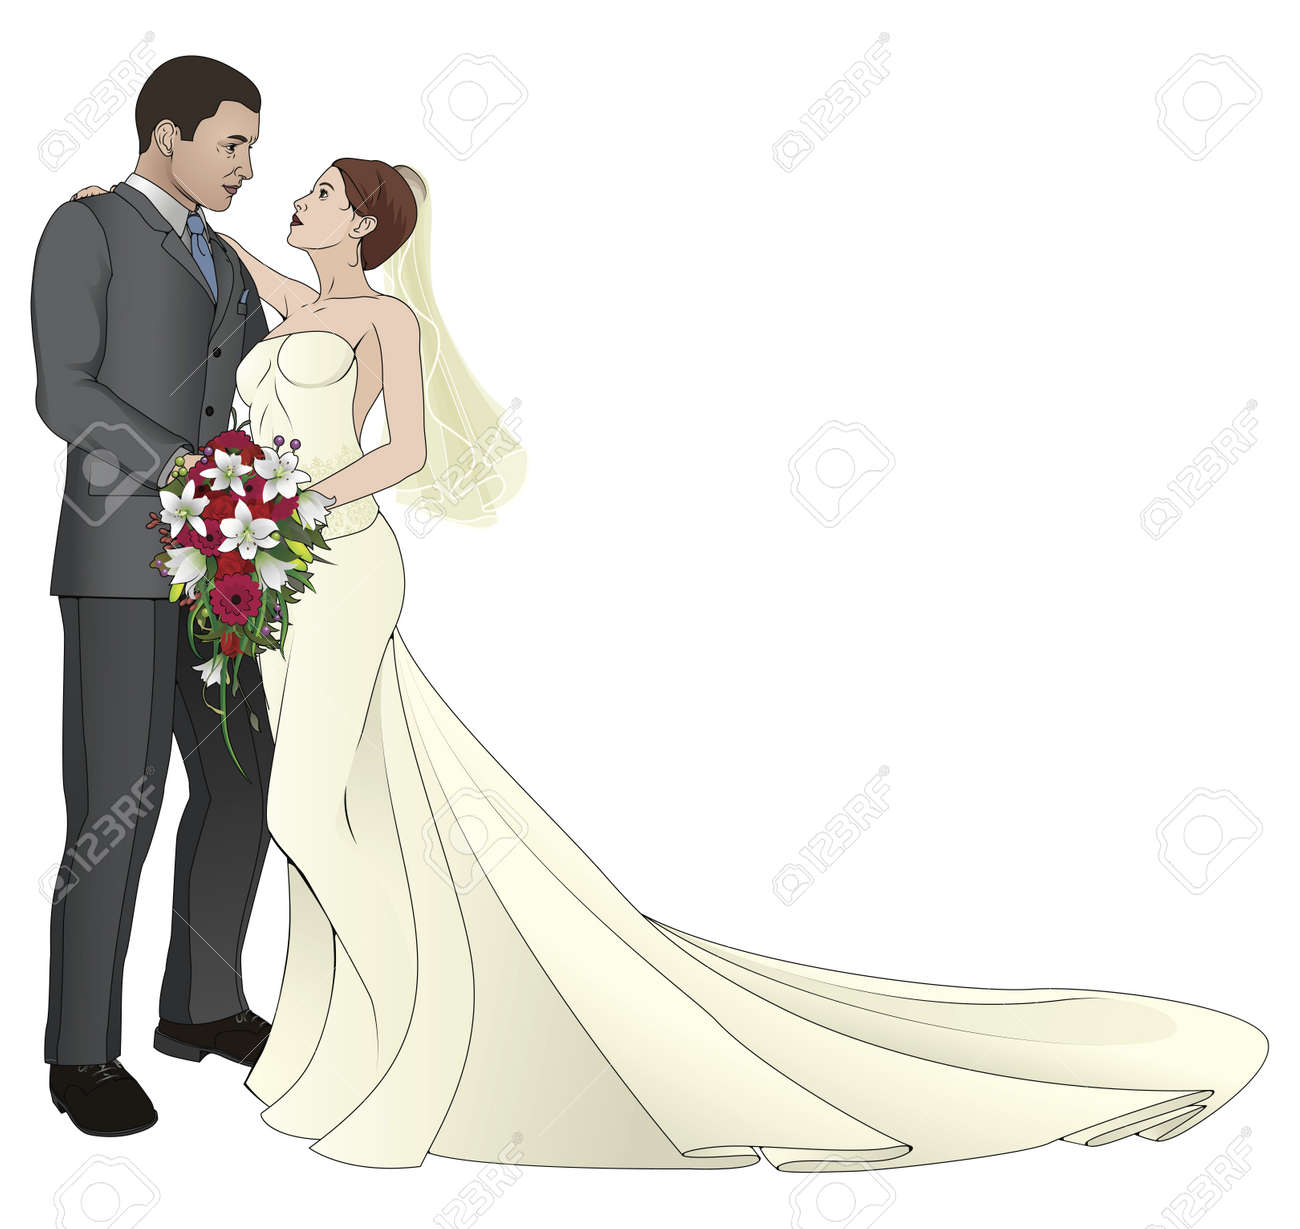 a bride and groom